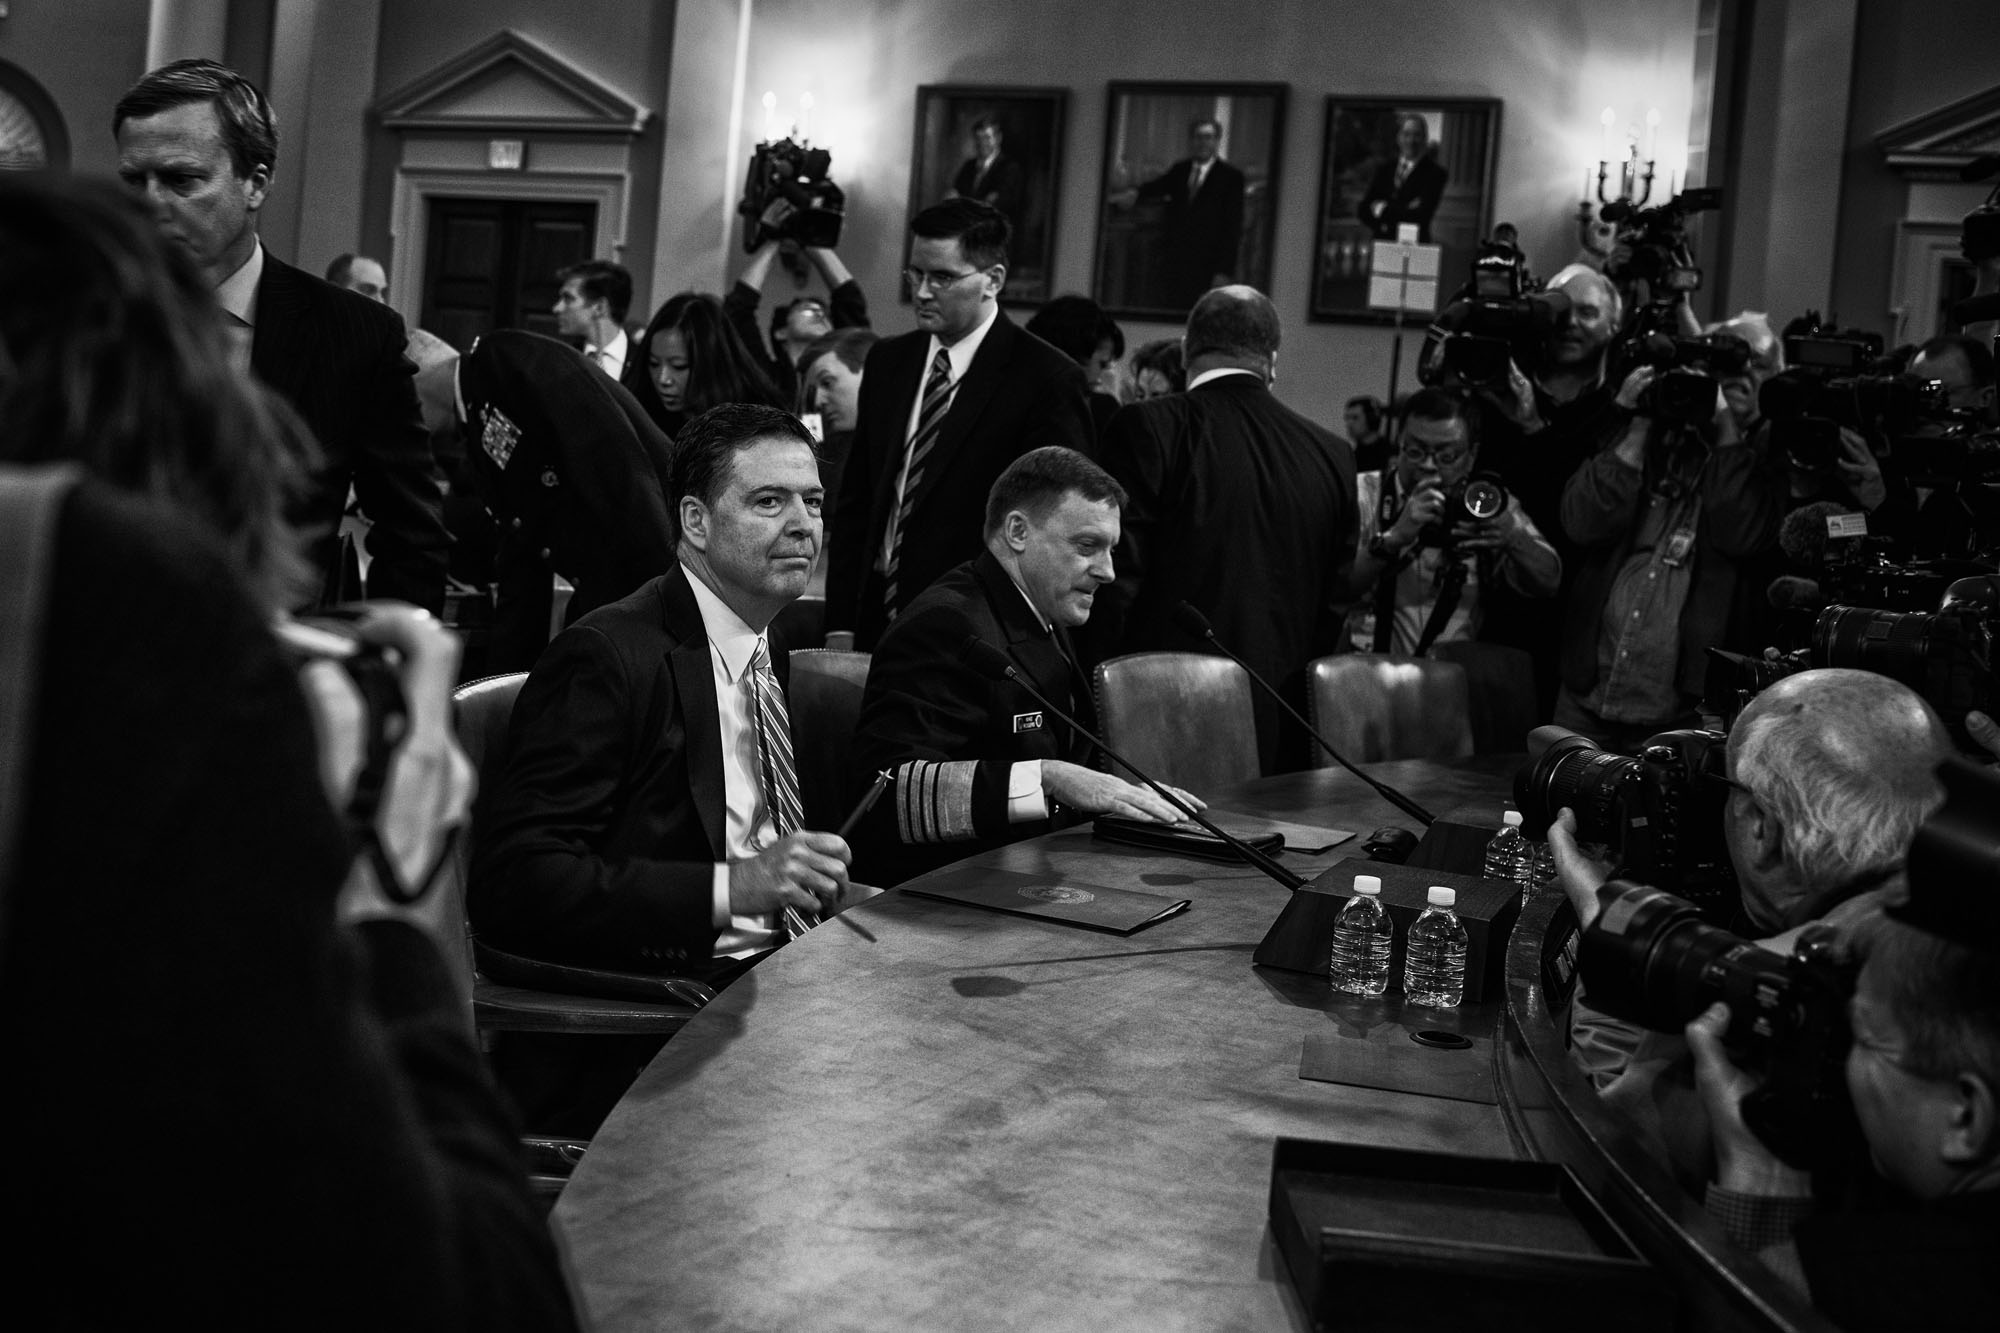 James Comey, Director of the Federal Bureau of Investigation, and Michael Rogers, Director of the National Security Agency, arrive before a House Permanent Select Committee on Intelligence hearing concerning Russian interference in the 2016 United States election, on March 20, 2017.